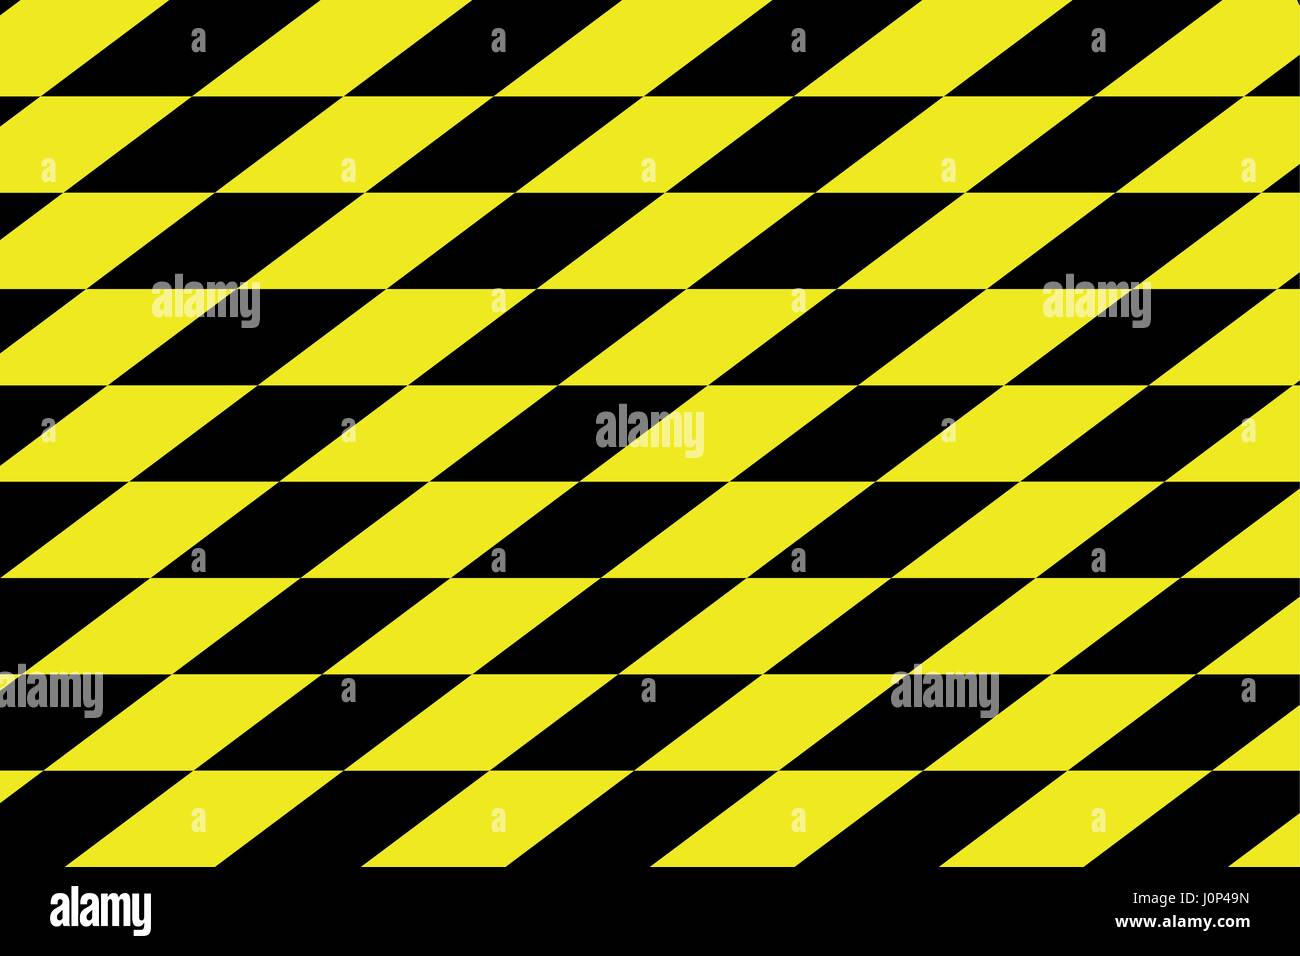 Chess Pattern Stock Photos & Chess Pattern Stock Images